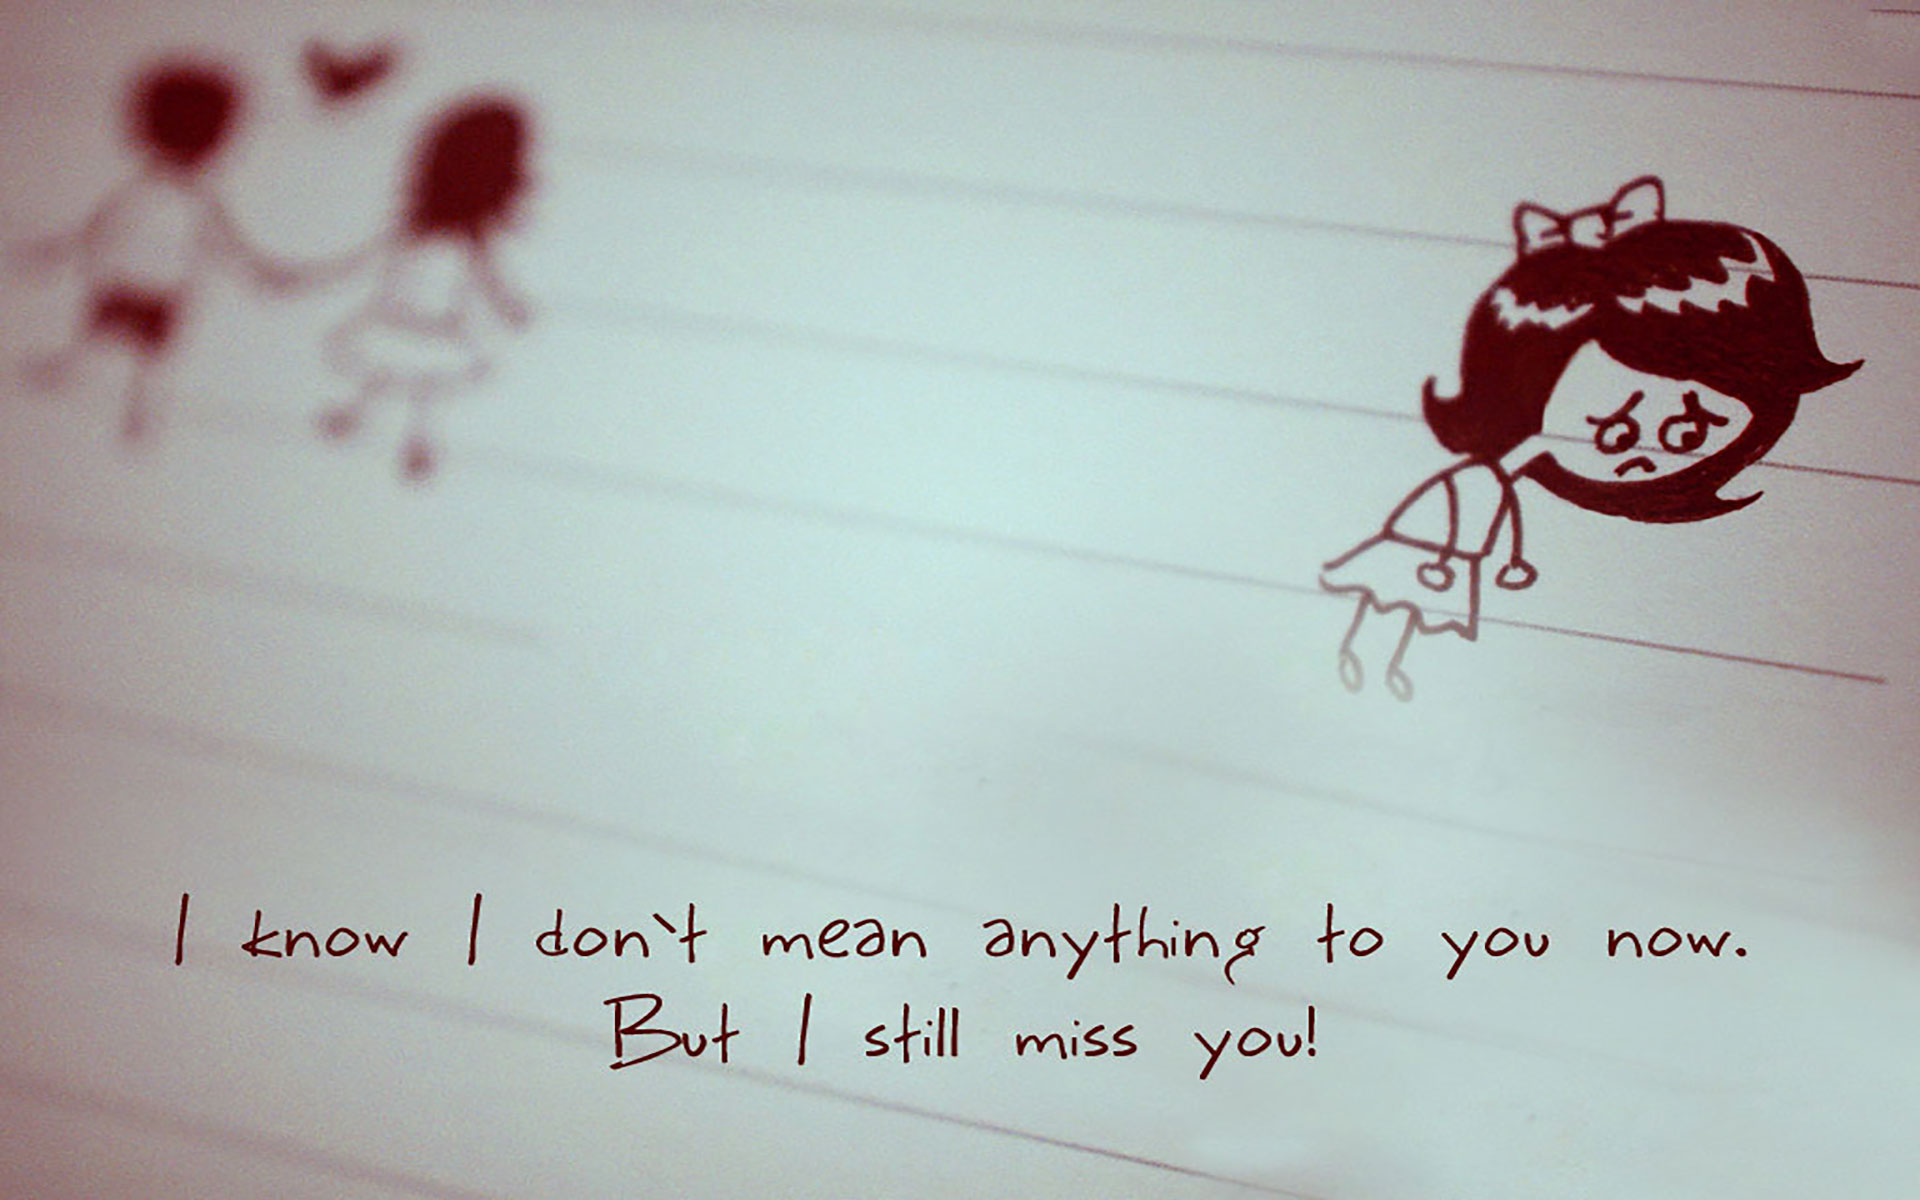 hd i miss you wallpaper for him or her|romantic wallpapers|chobirdokan